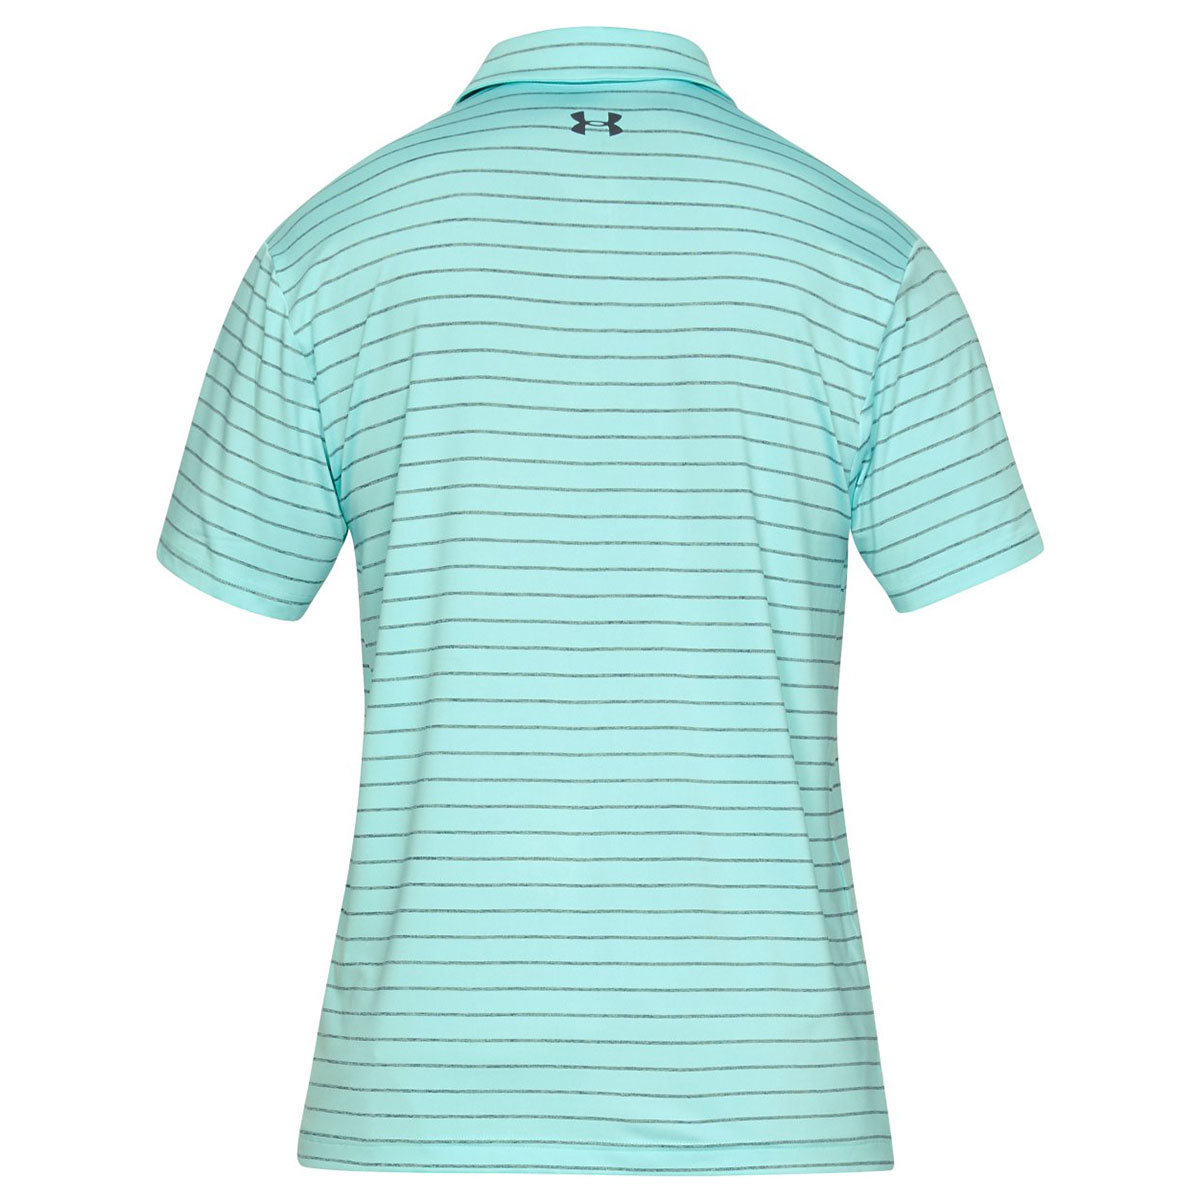 Under-Armour-Mens-2019-Playoff-Polo-2-0-Breathable-Light-Stretch-Polo-Shirt thumbnail 87